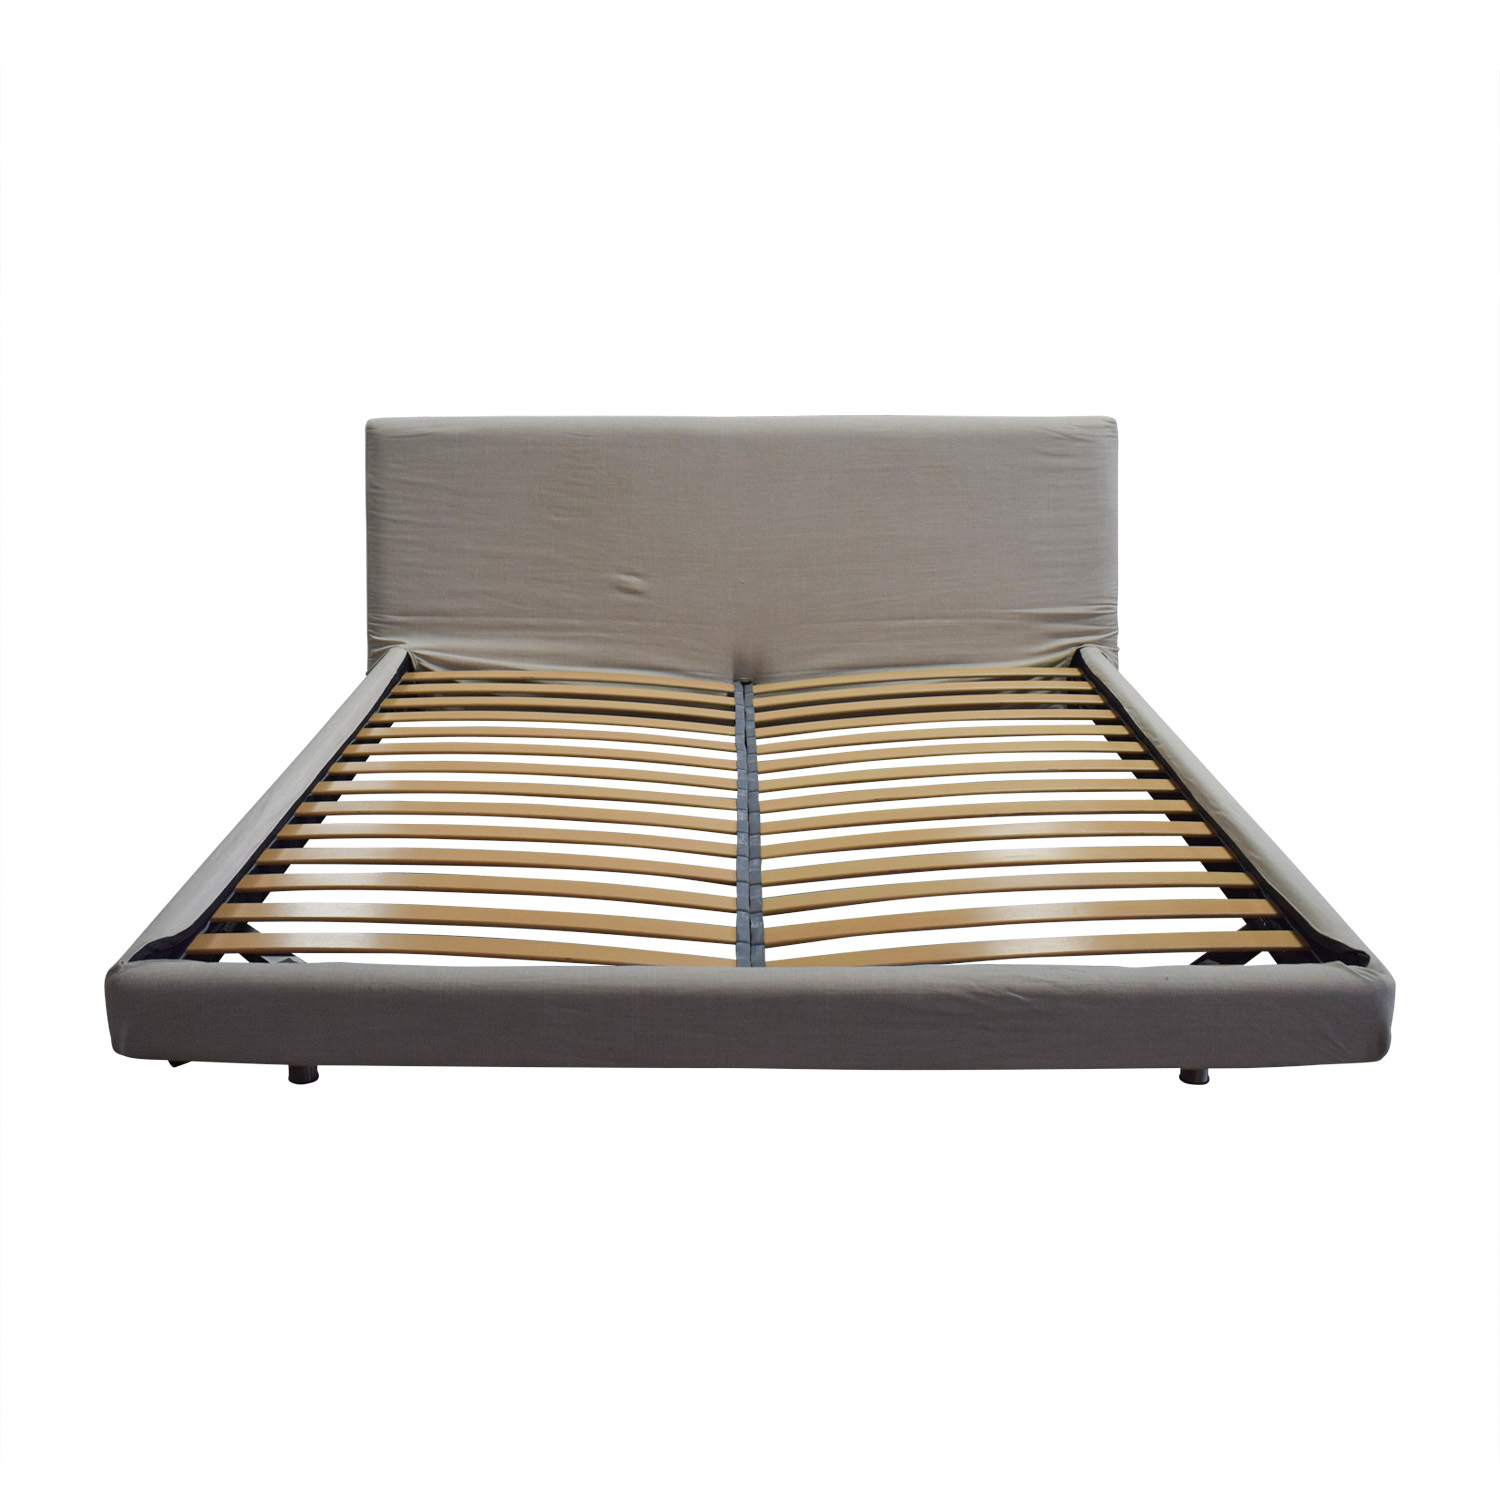 Design Within Reach Design Within Reach Reva Oatmeal Fabric Platform King Bed Frame for sale